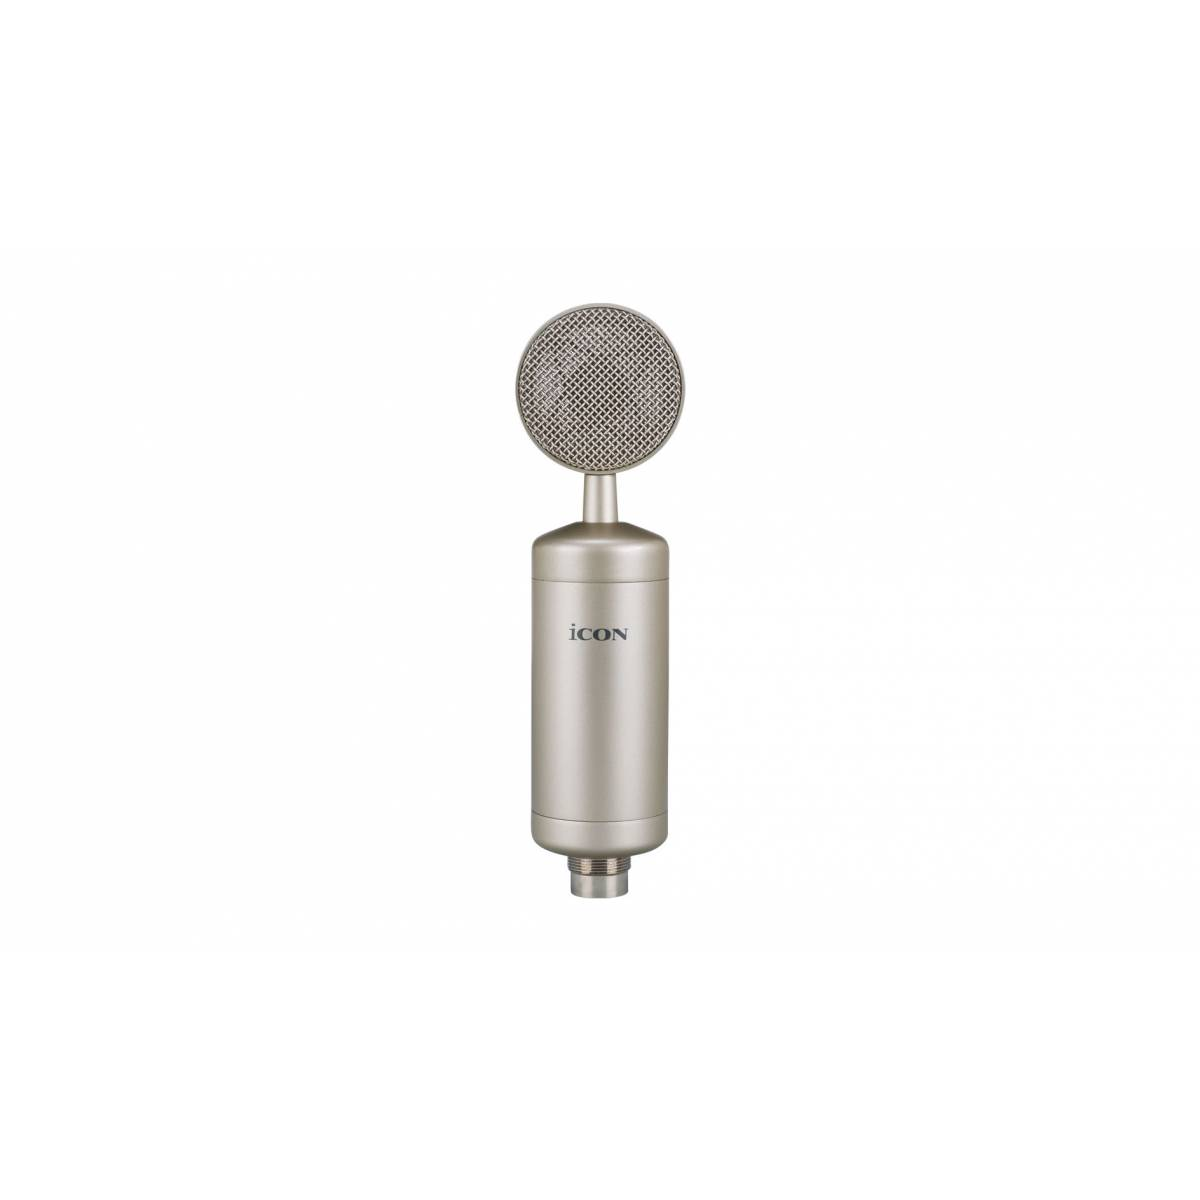 icon u1 usb recording microphone usb microphones from inta audio uk. Black Bedroom Furniture Sets. Home Design Ideas